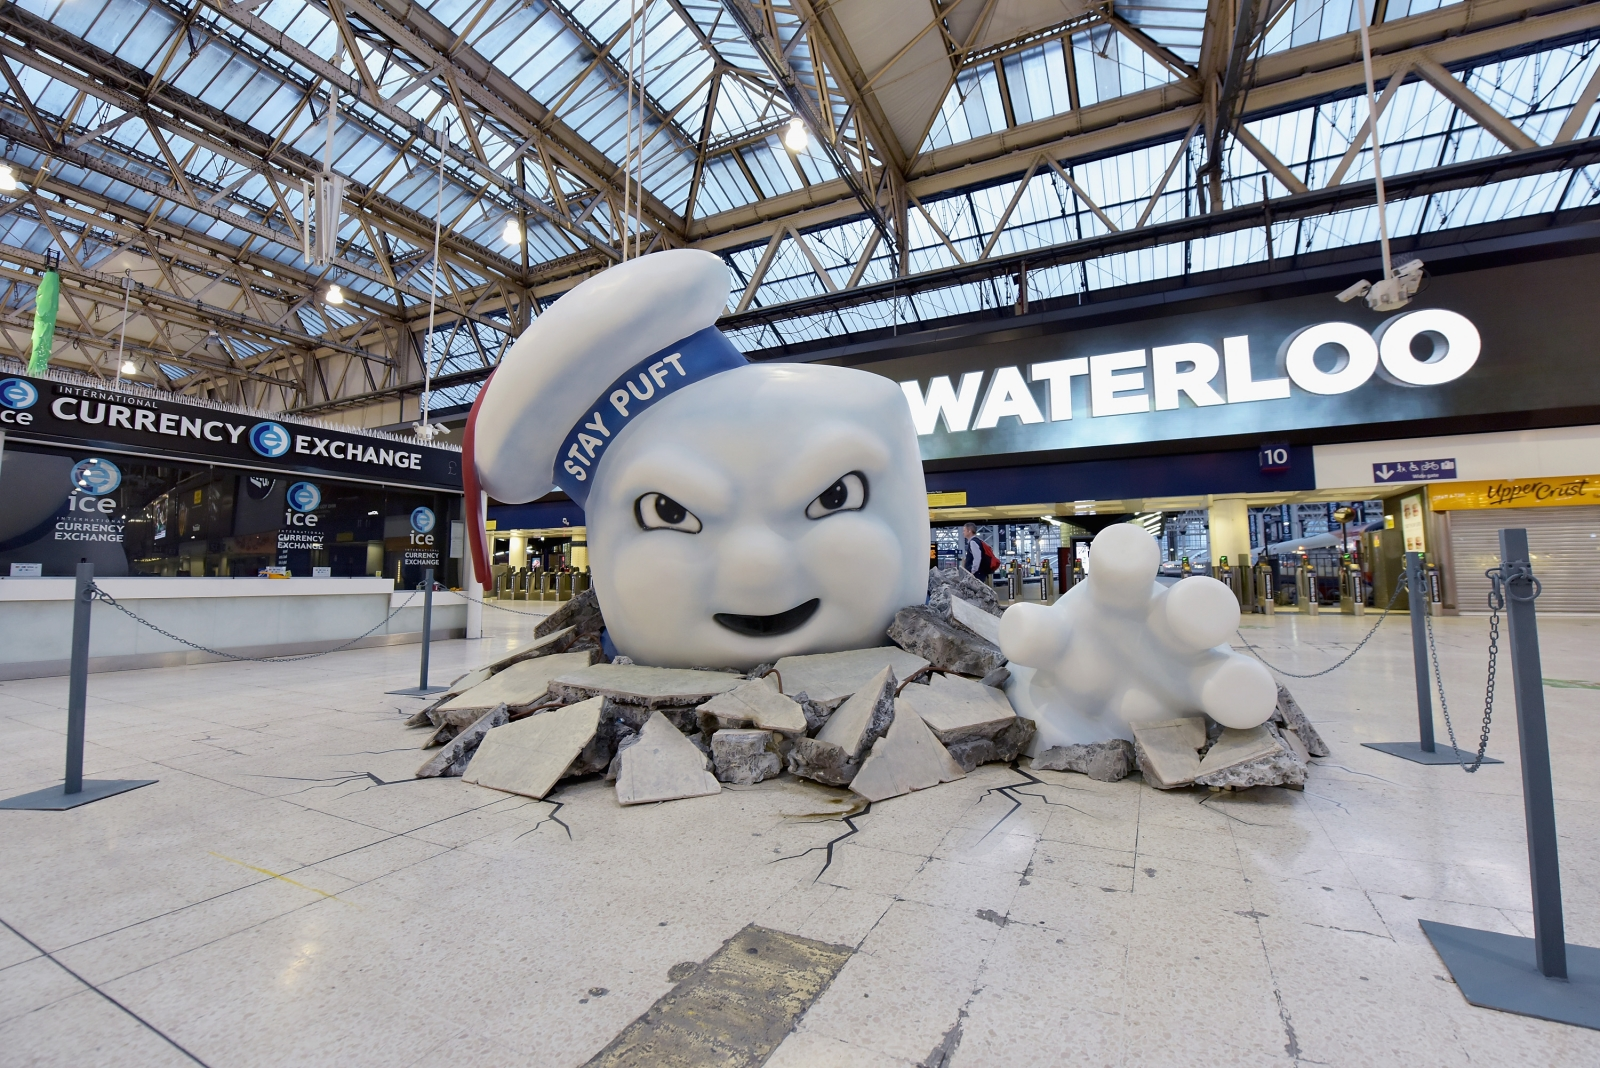 Image result for Ghostbusters waterloo